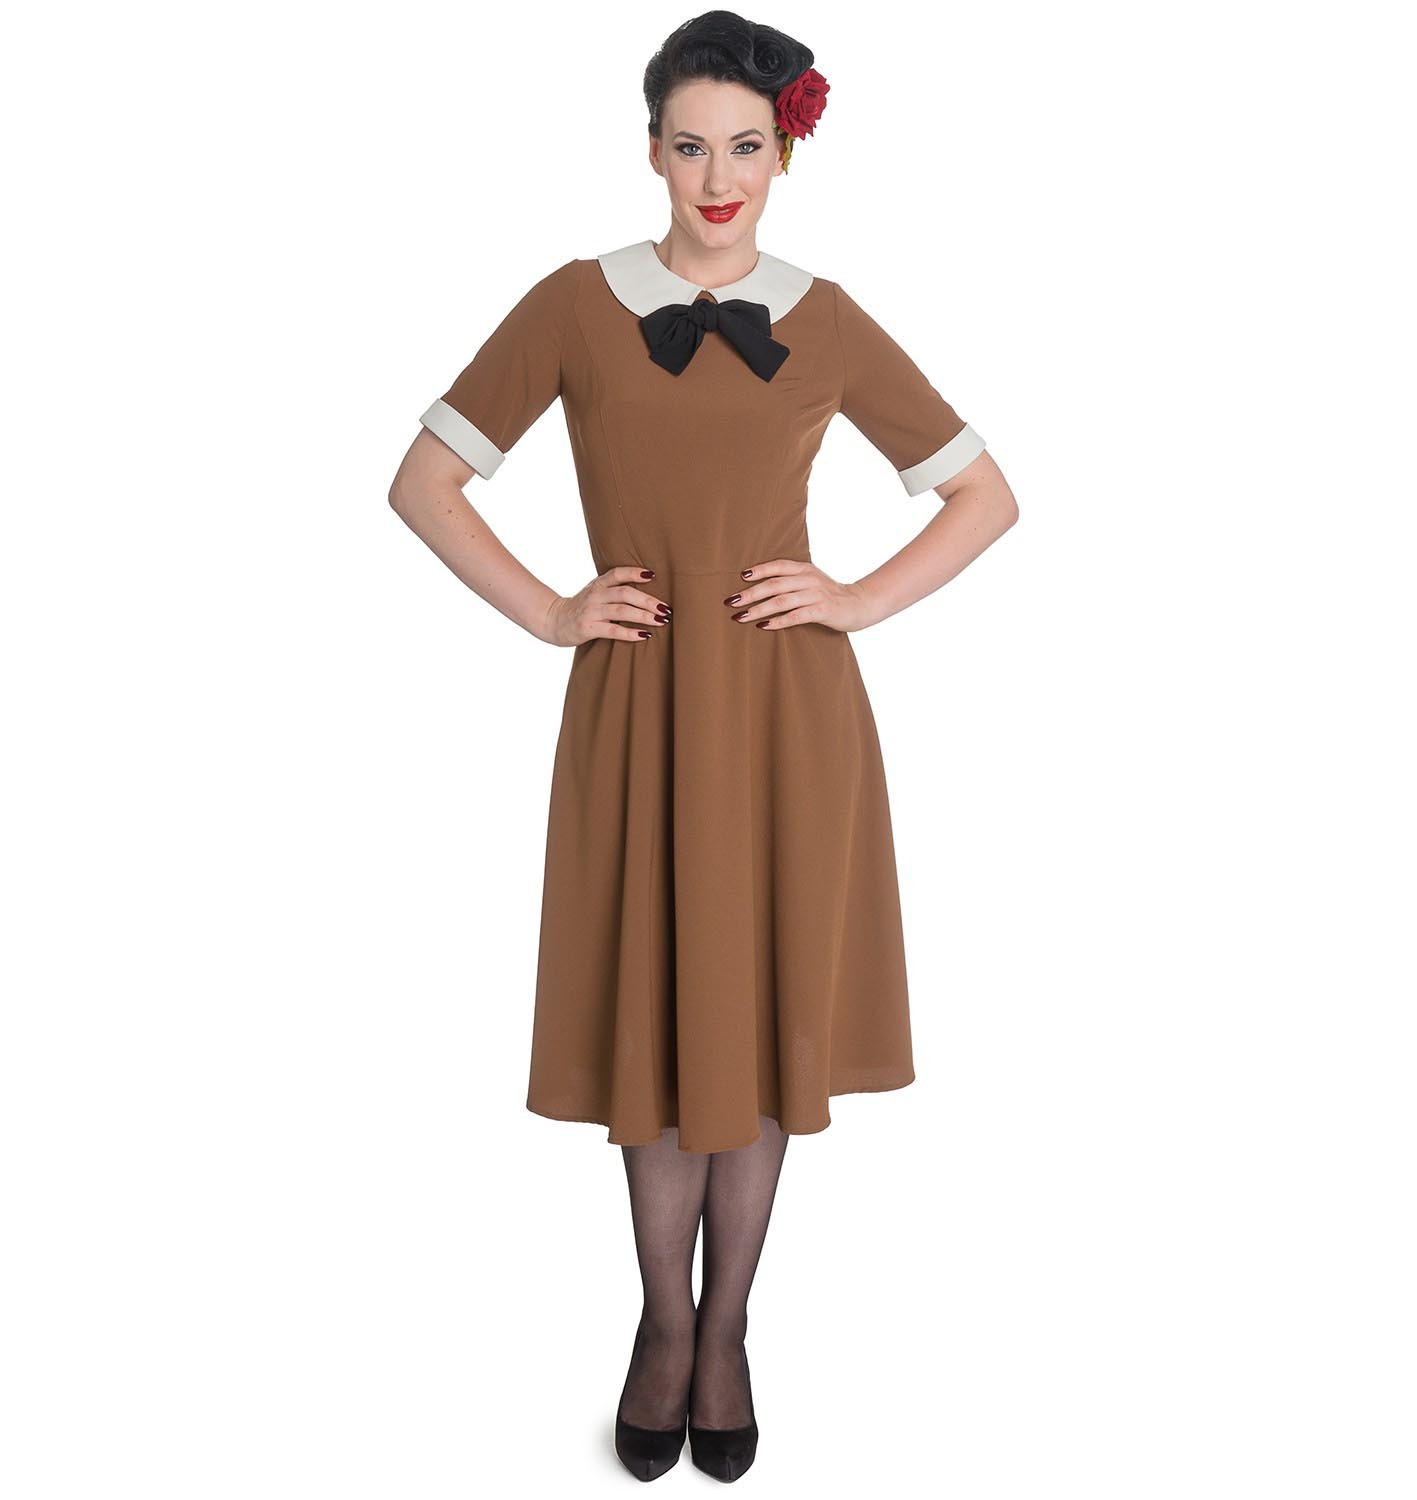 Hell-Bunny-Vintage-Pin-Up-Tea-Dress-40s-50s-KIM-Tobacco-Brown thumbnail 3